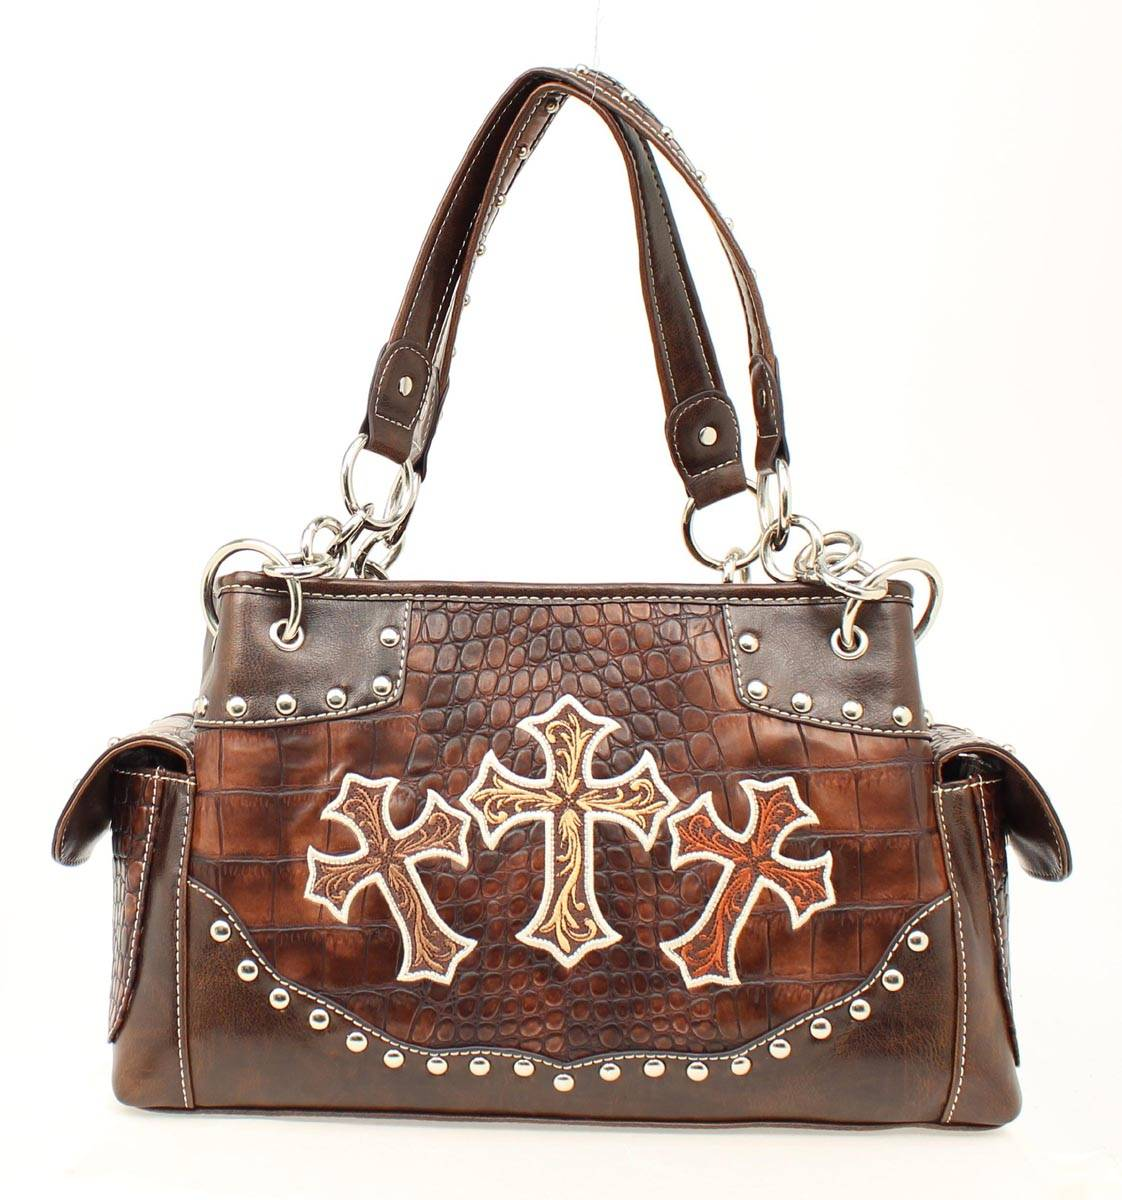 Blazin Roxx Three Crosses Satchel Handbag